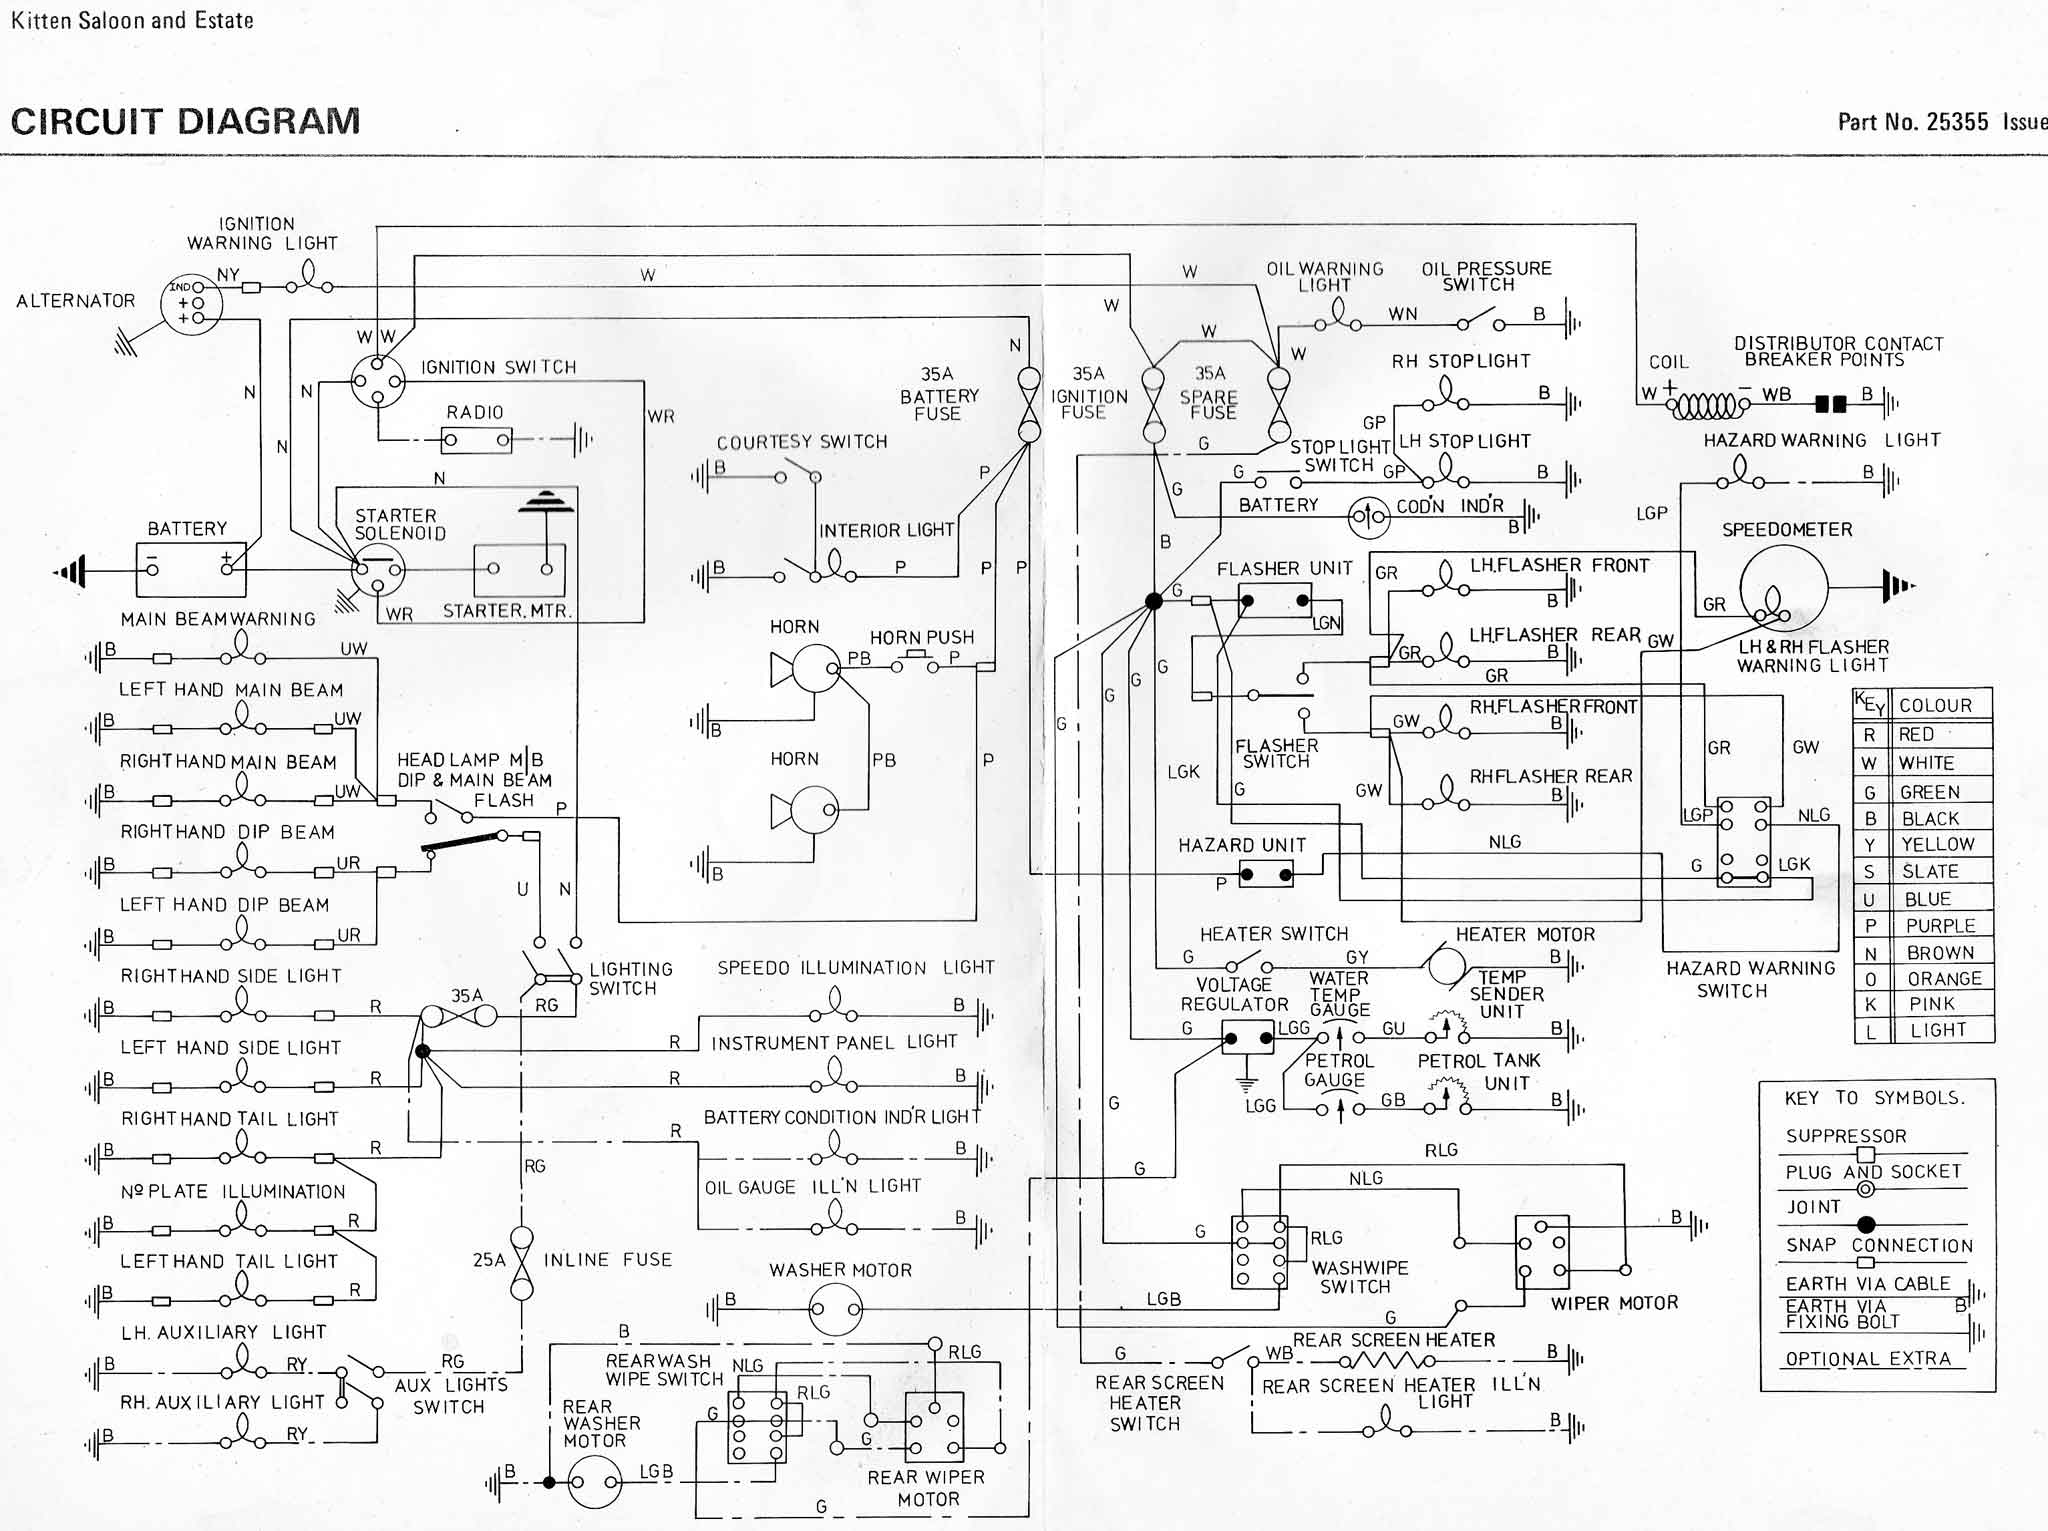 Reliant Heaters Wiring Diagrams Anything Gas Water Heater Thermostat Diagram Spares And Specification Sheets Rh Reliantspares Com 3 Phase Installation